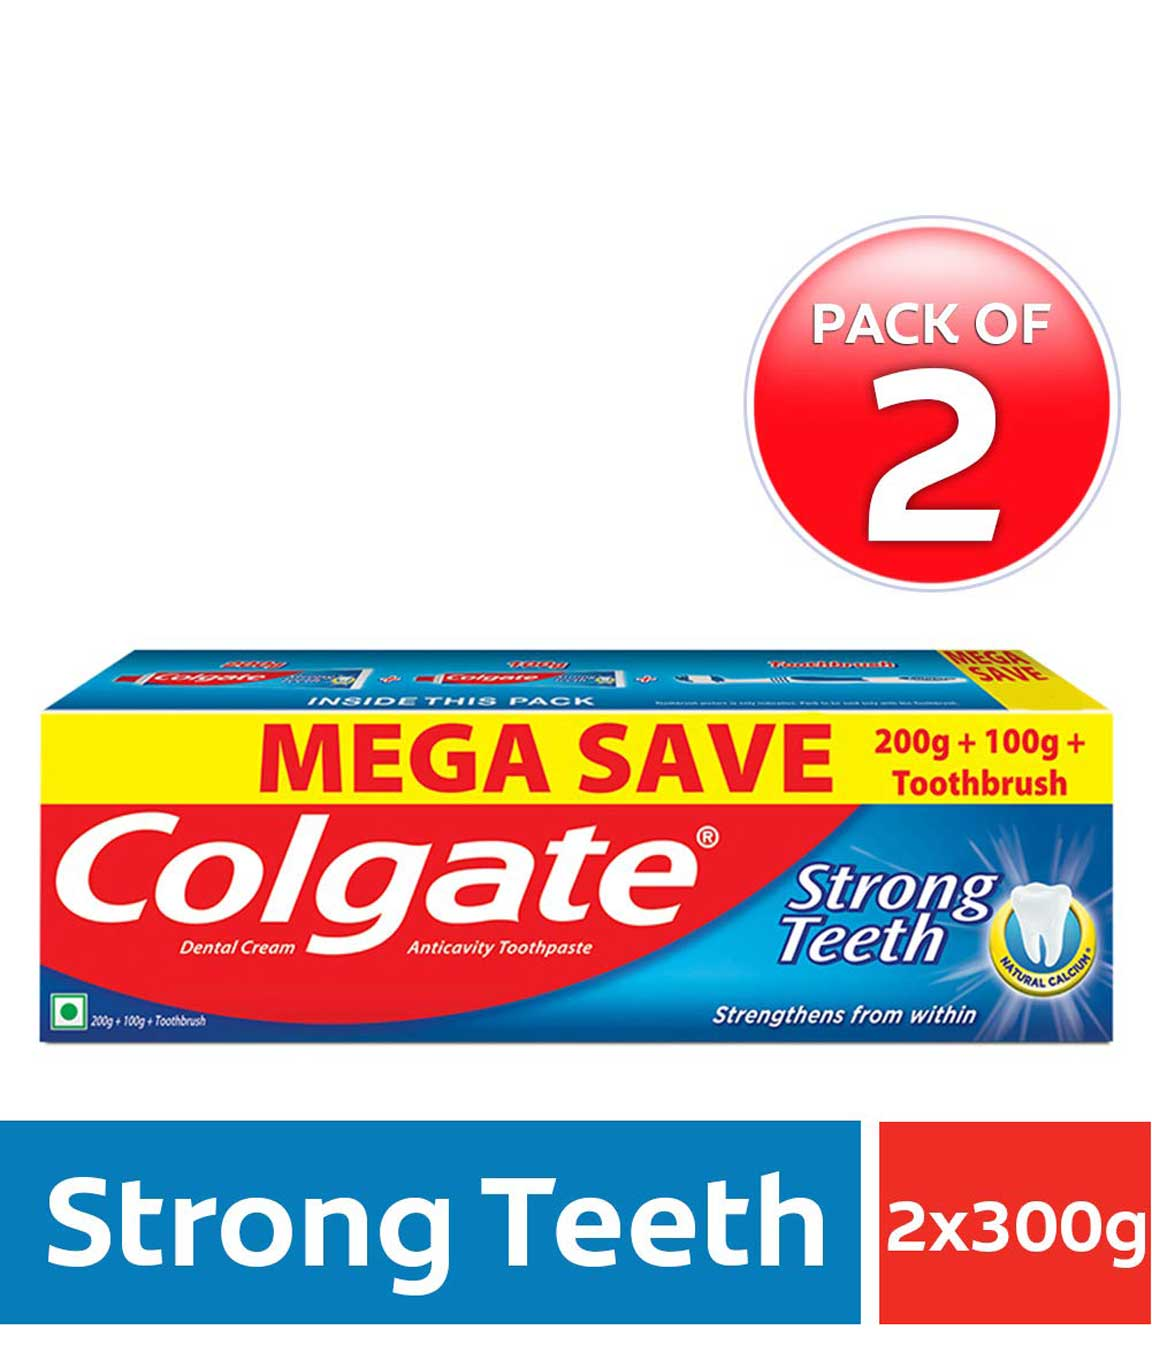 Colgate Strong Teeth Anti-Cavity Toothpaste – 300g with Free Toothbrush (Pack of 2)